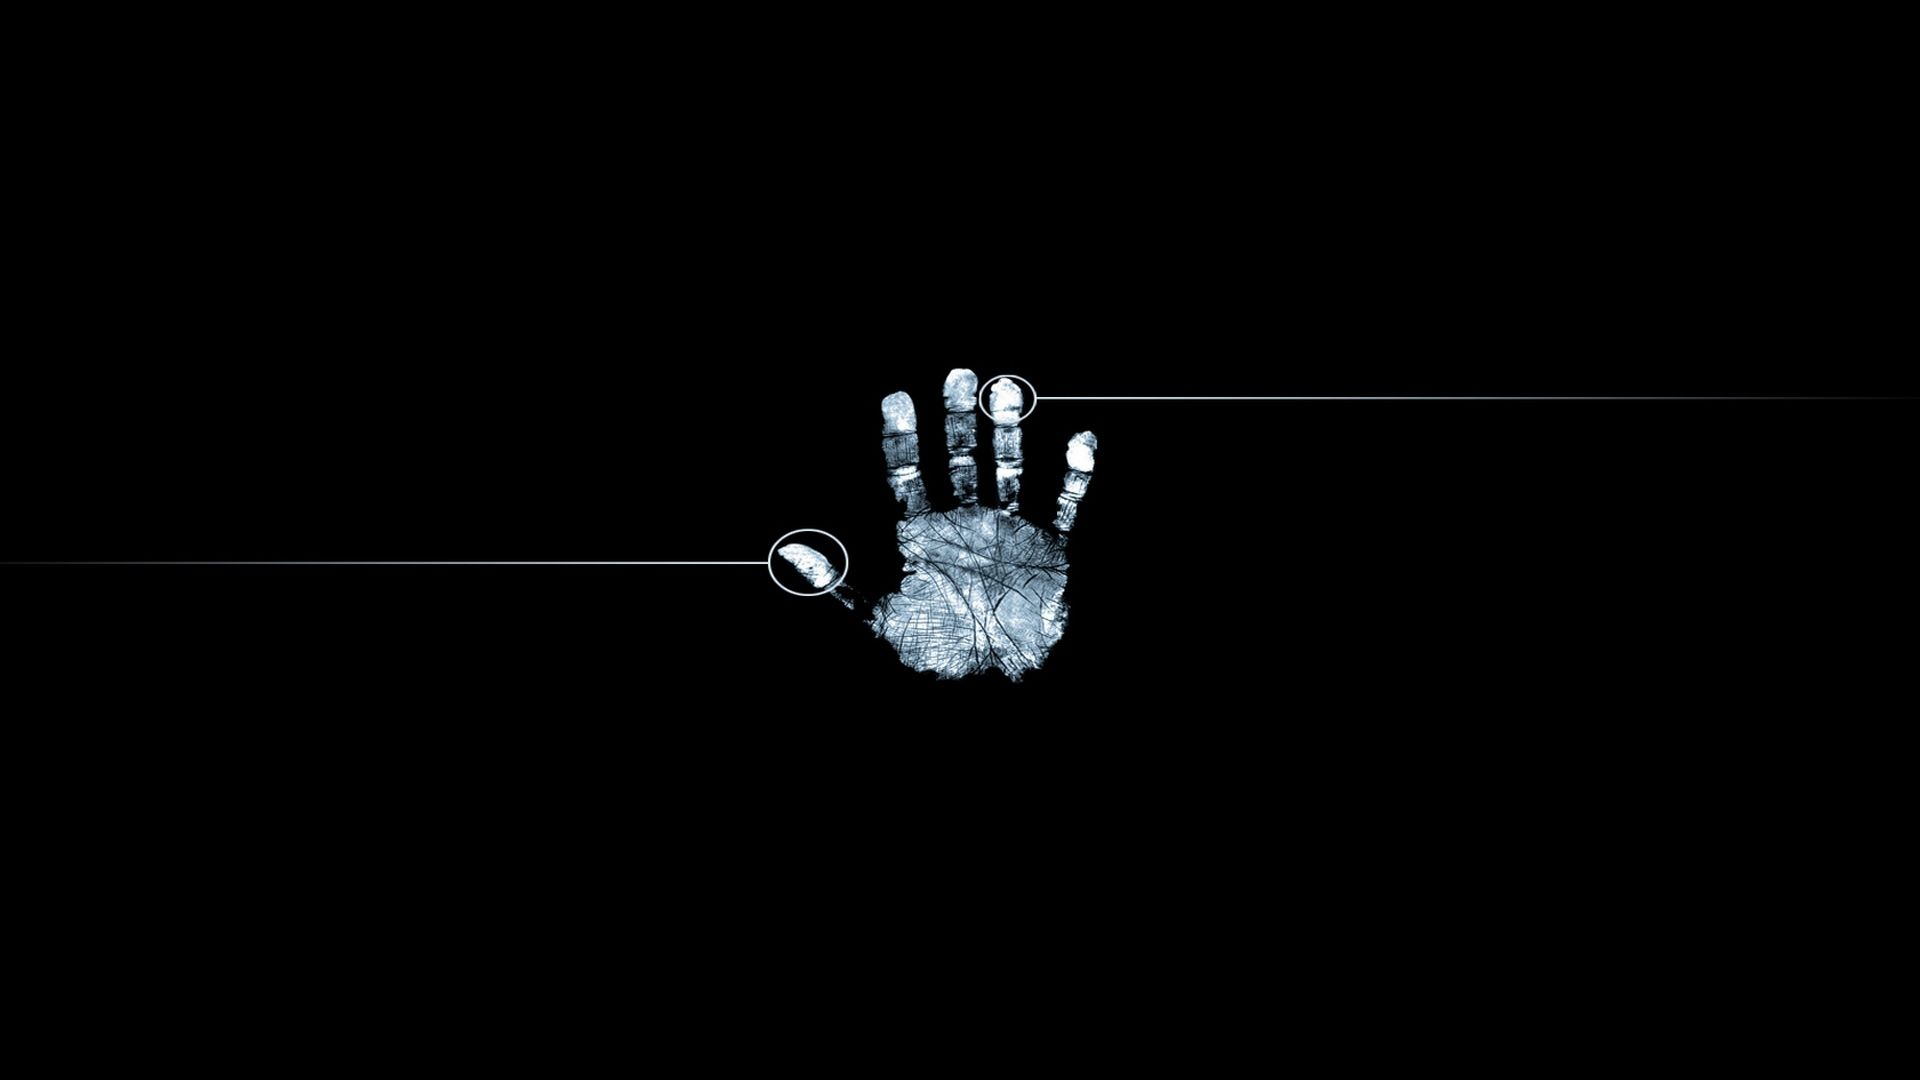 Maxworld Black Hand 1920 1080 Desktop Wallpaper Black Pure Black Wallpaper Dark Black Wallpaper